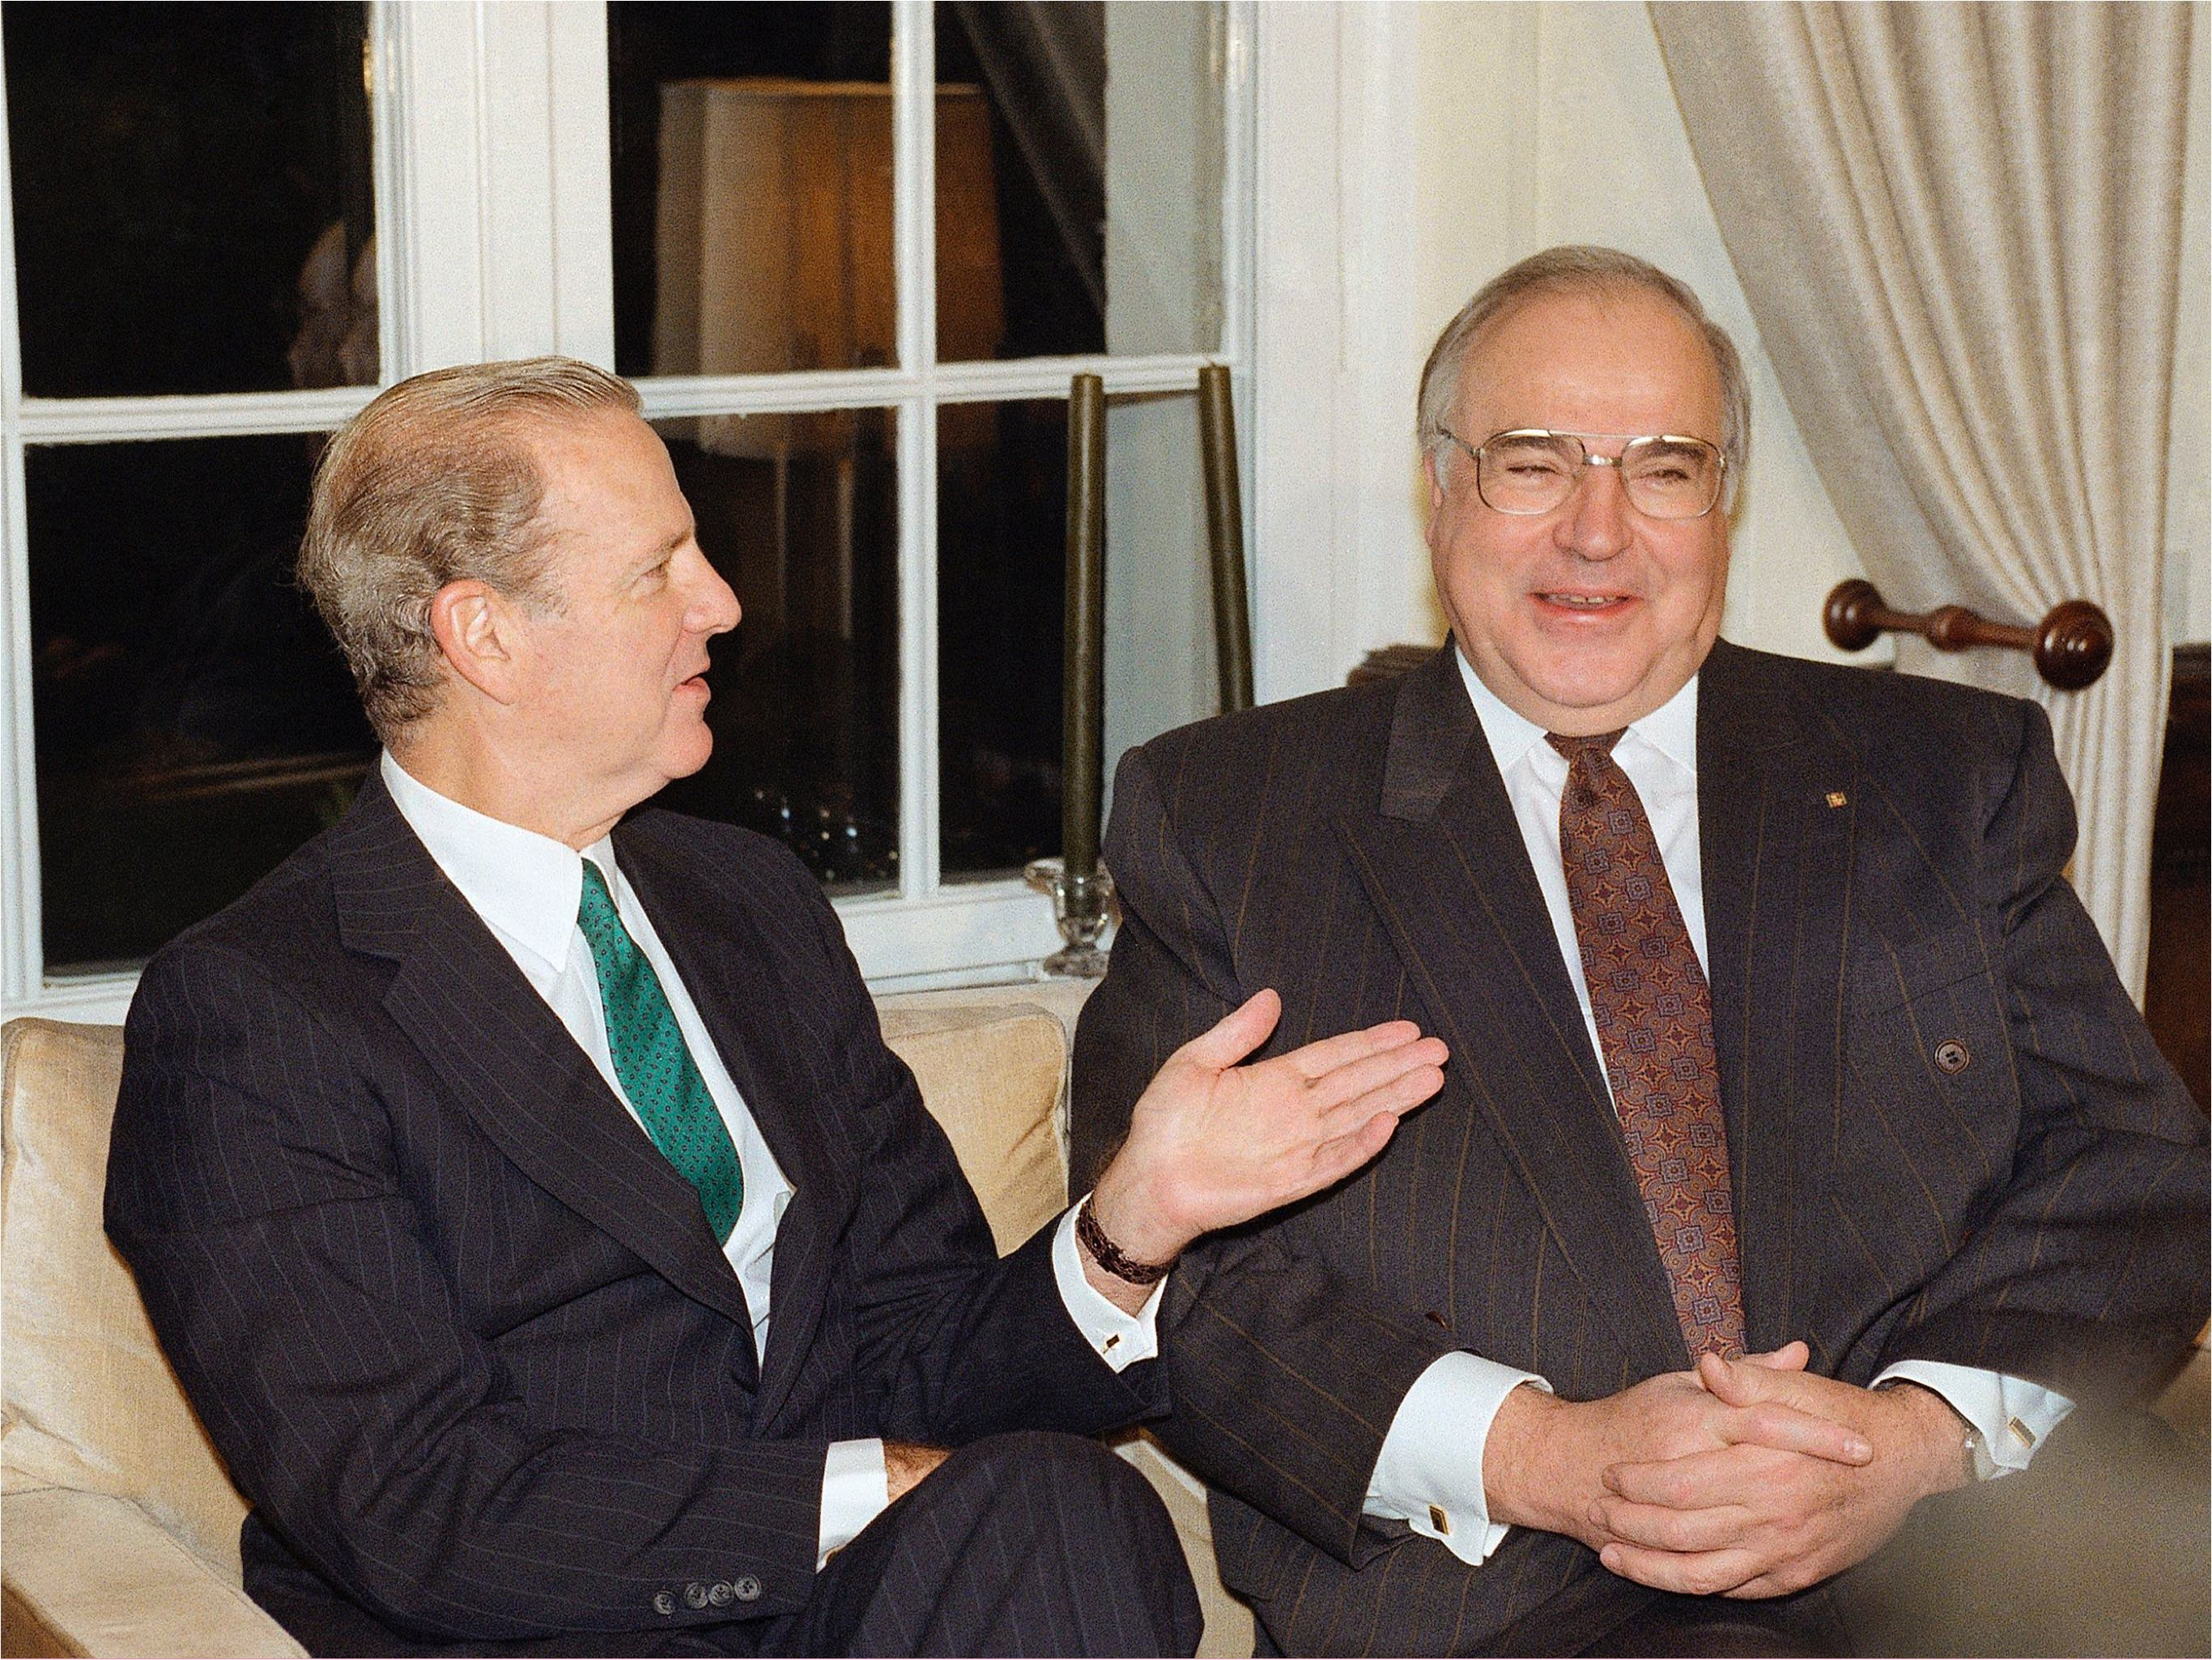 Secretary of State James Baker meets with German Chancellor Helmut Kohl